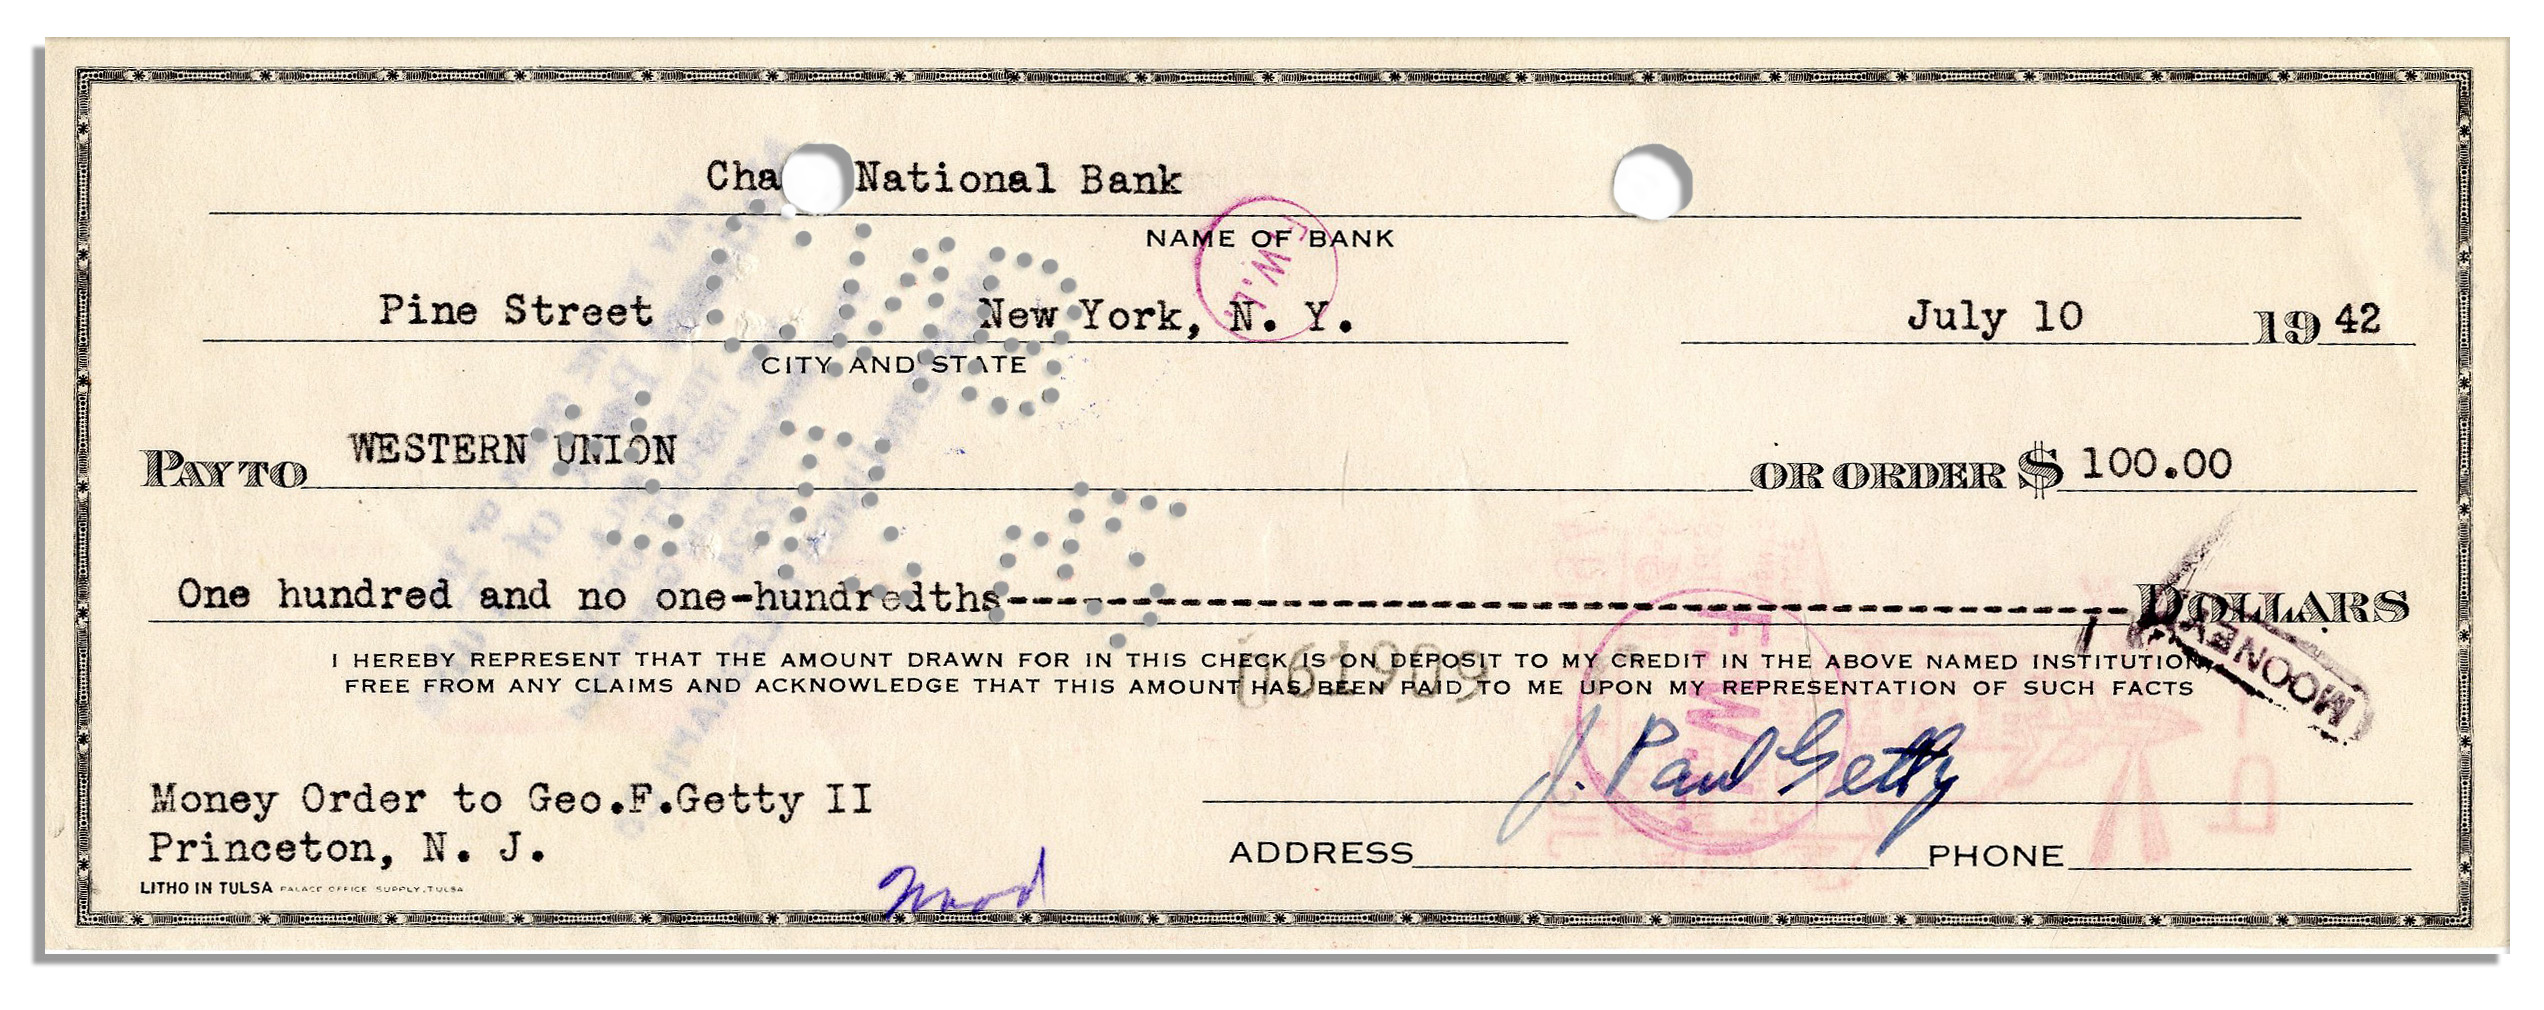 lot detail billionaire oil magnate j paul getty signed check rh natedsanders com bank of america wiring money abroad